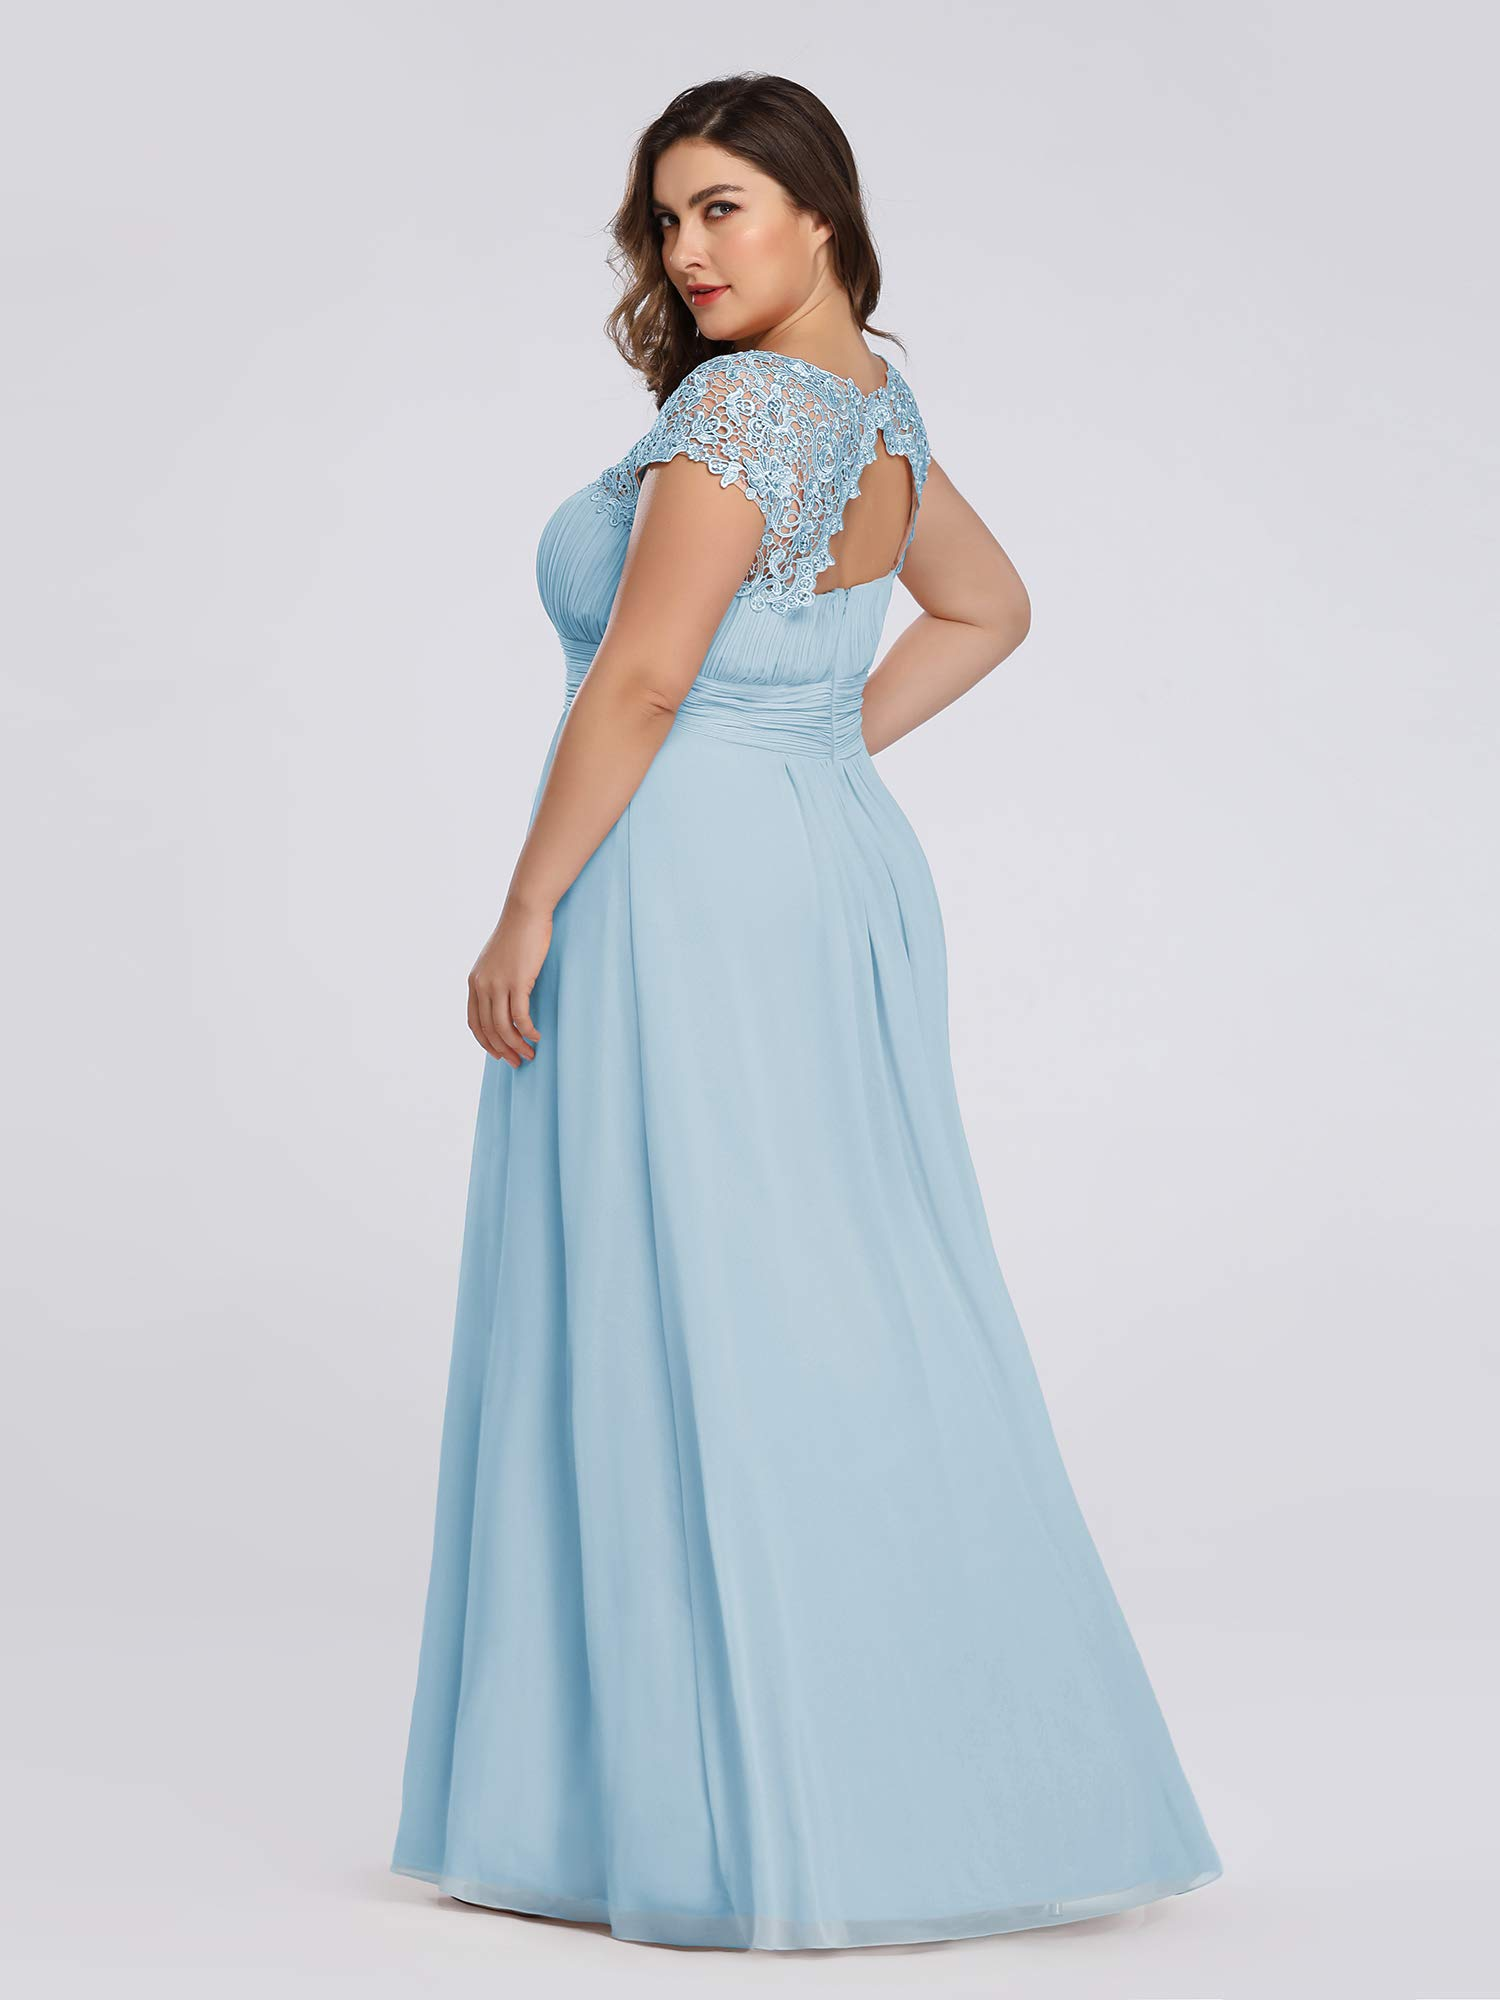 0ad39f9b4810d Ever-Pretty Womens A-Line Lace Plus Size Mother of The Groom Dresses for  Women Blue US 18